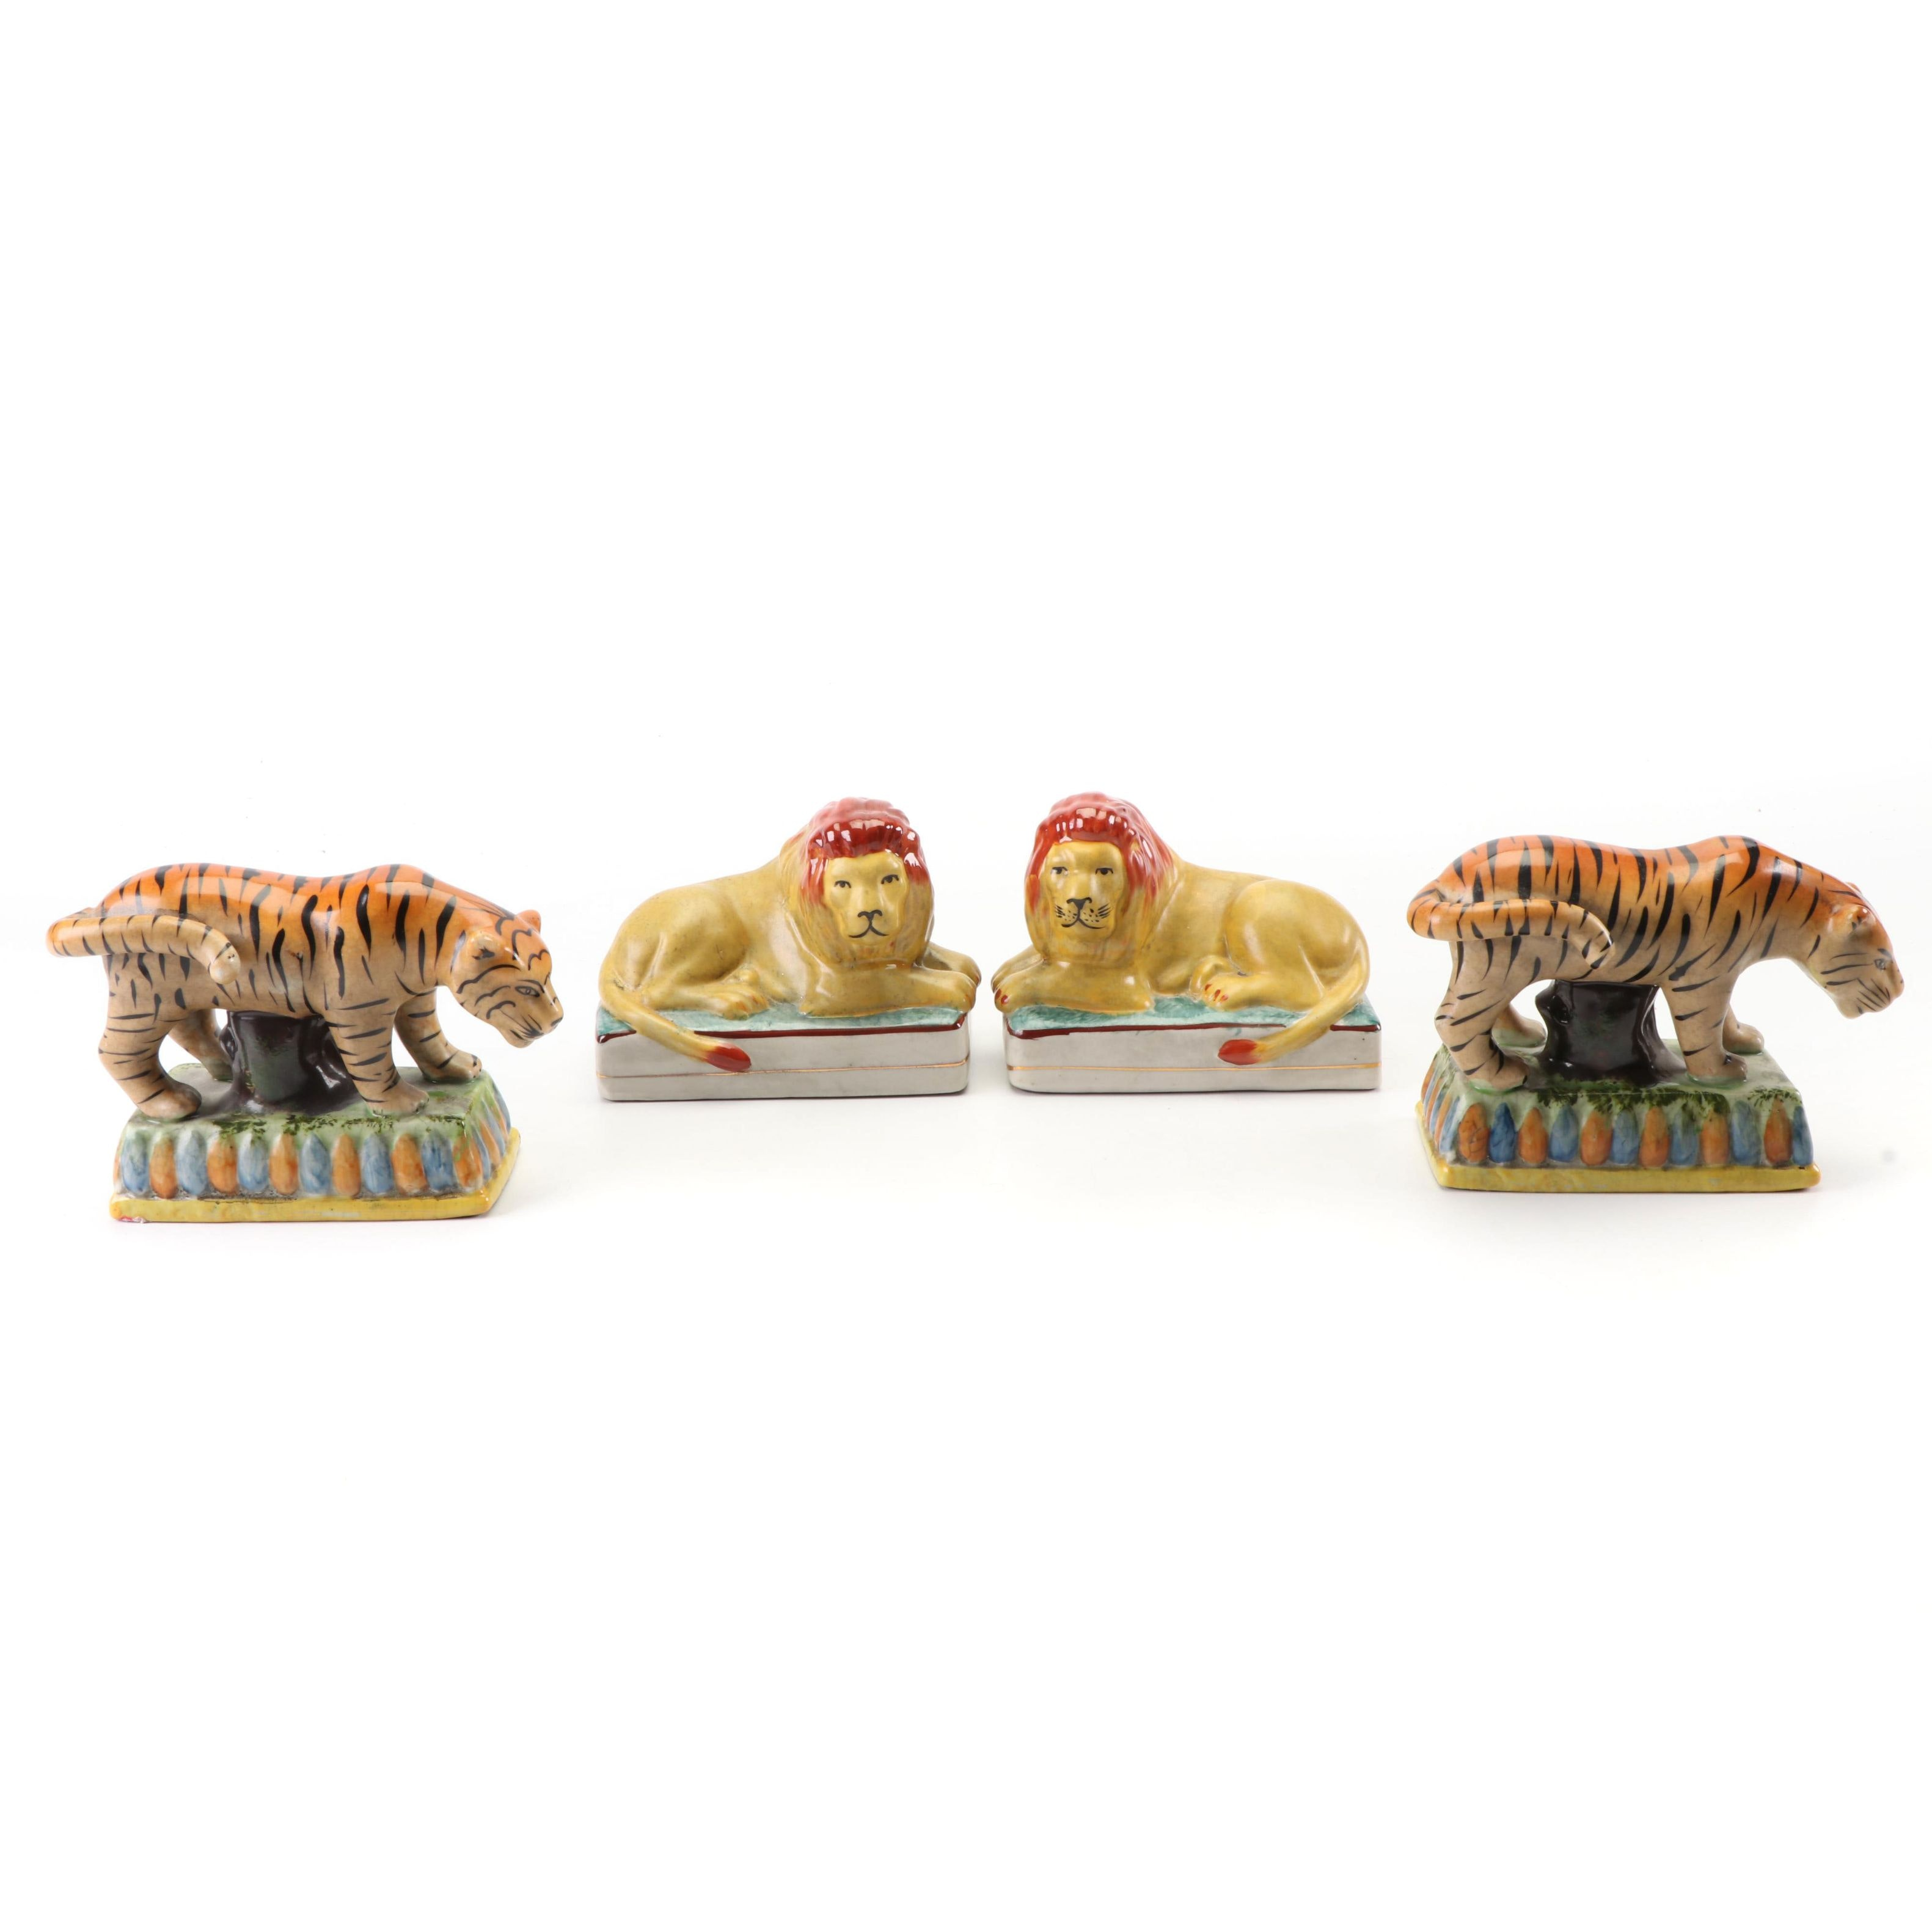 Hand-Painted Porcelain Lion and Tiger Bookends